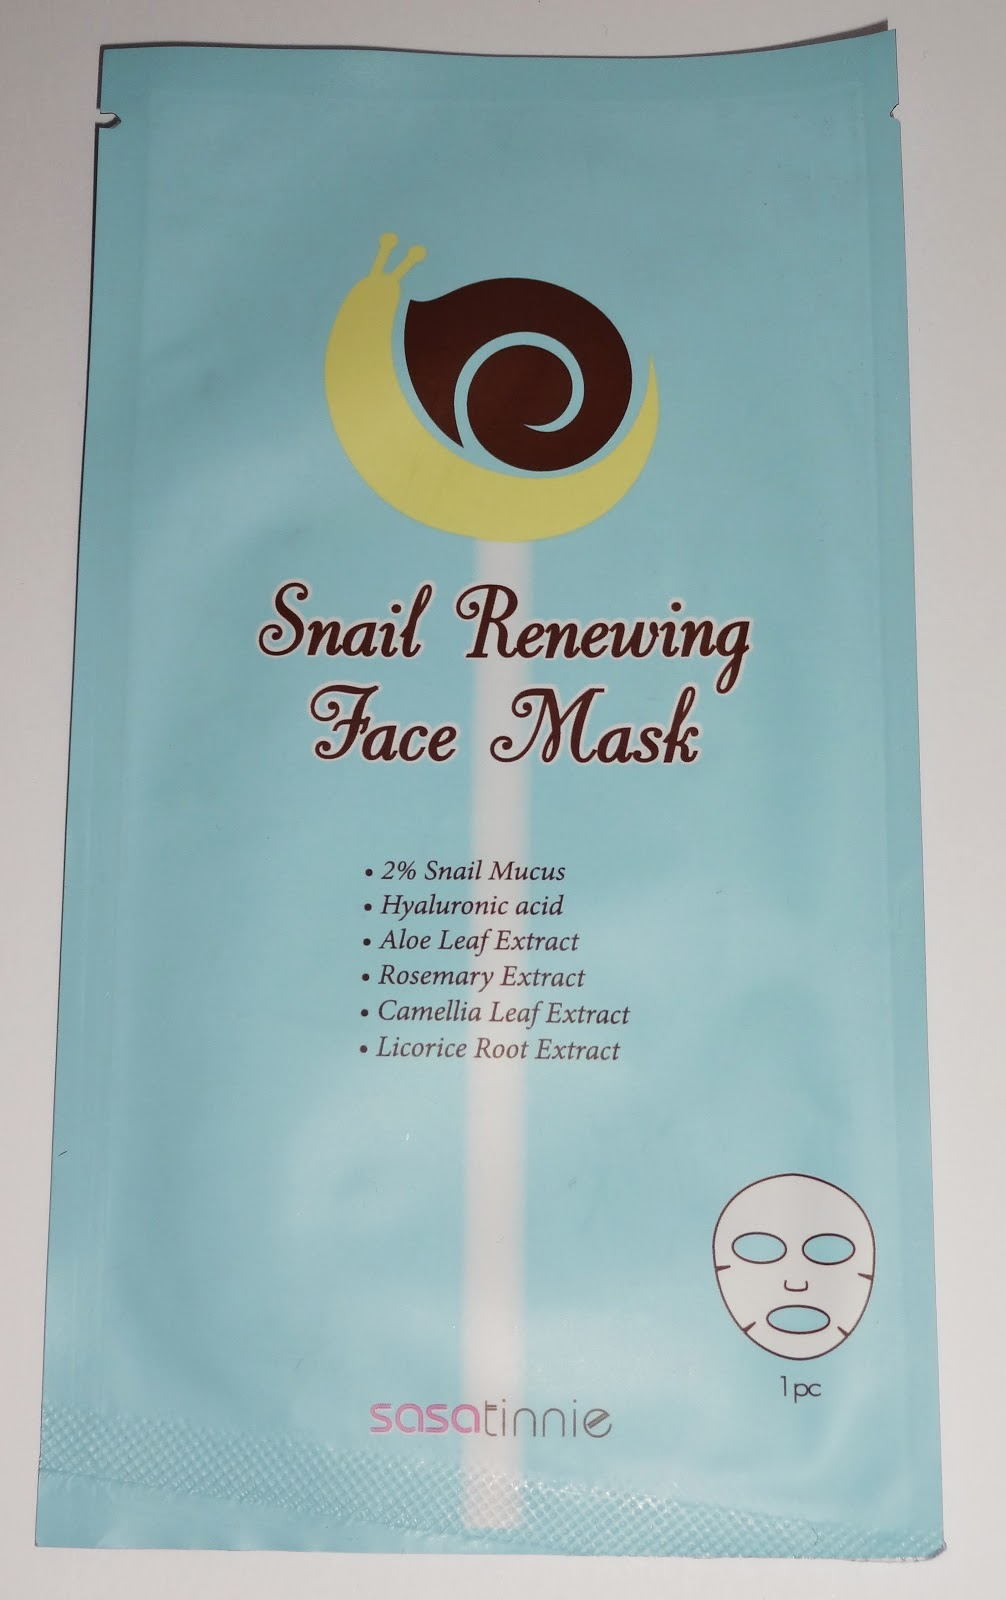 Sasatinnie - Snail Renewing Face Mask